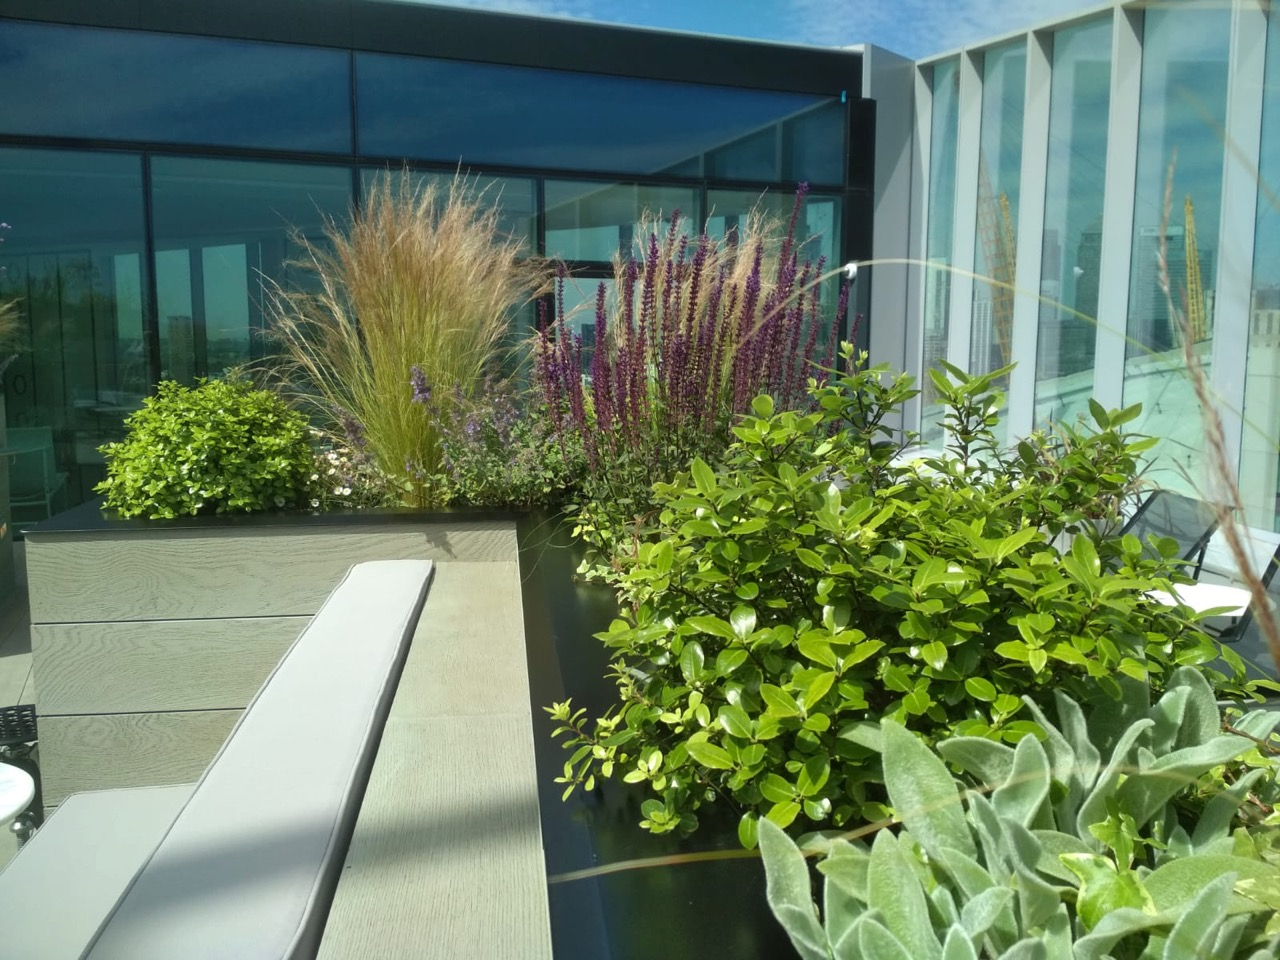 plants on roof terrace greenwich stipa pittosporum salvia stachys